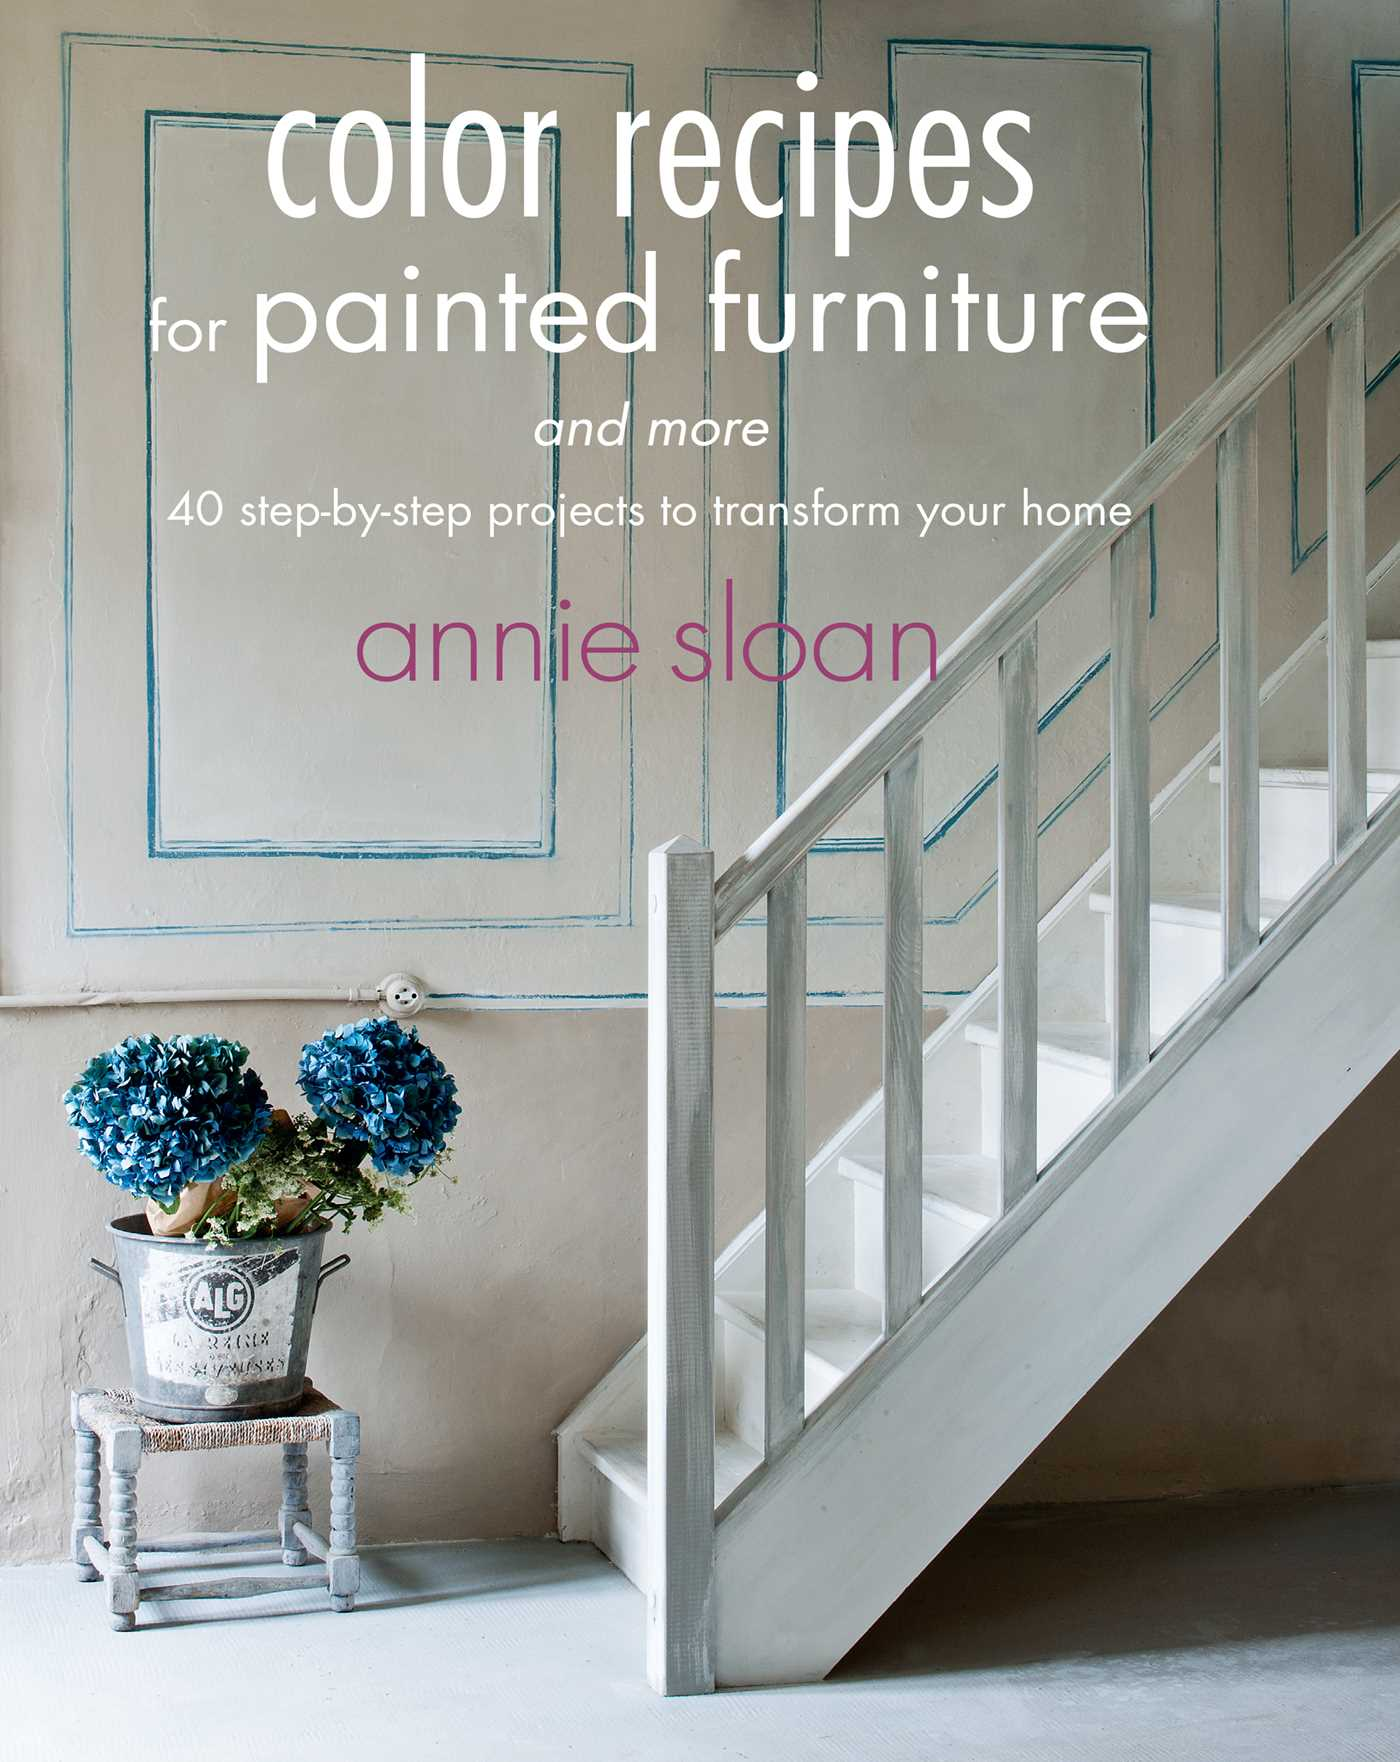 Color recipes for painted furniture and more book by annie sloan color recipes for painted furniture and more 9781908862778 hr gumiabroncs Gallery